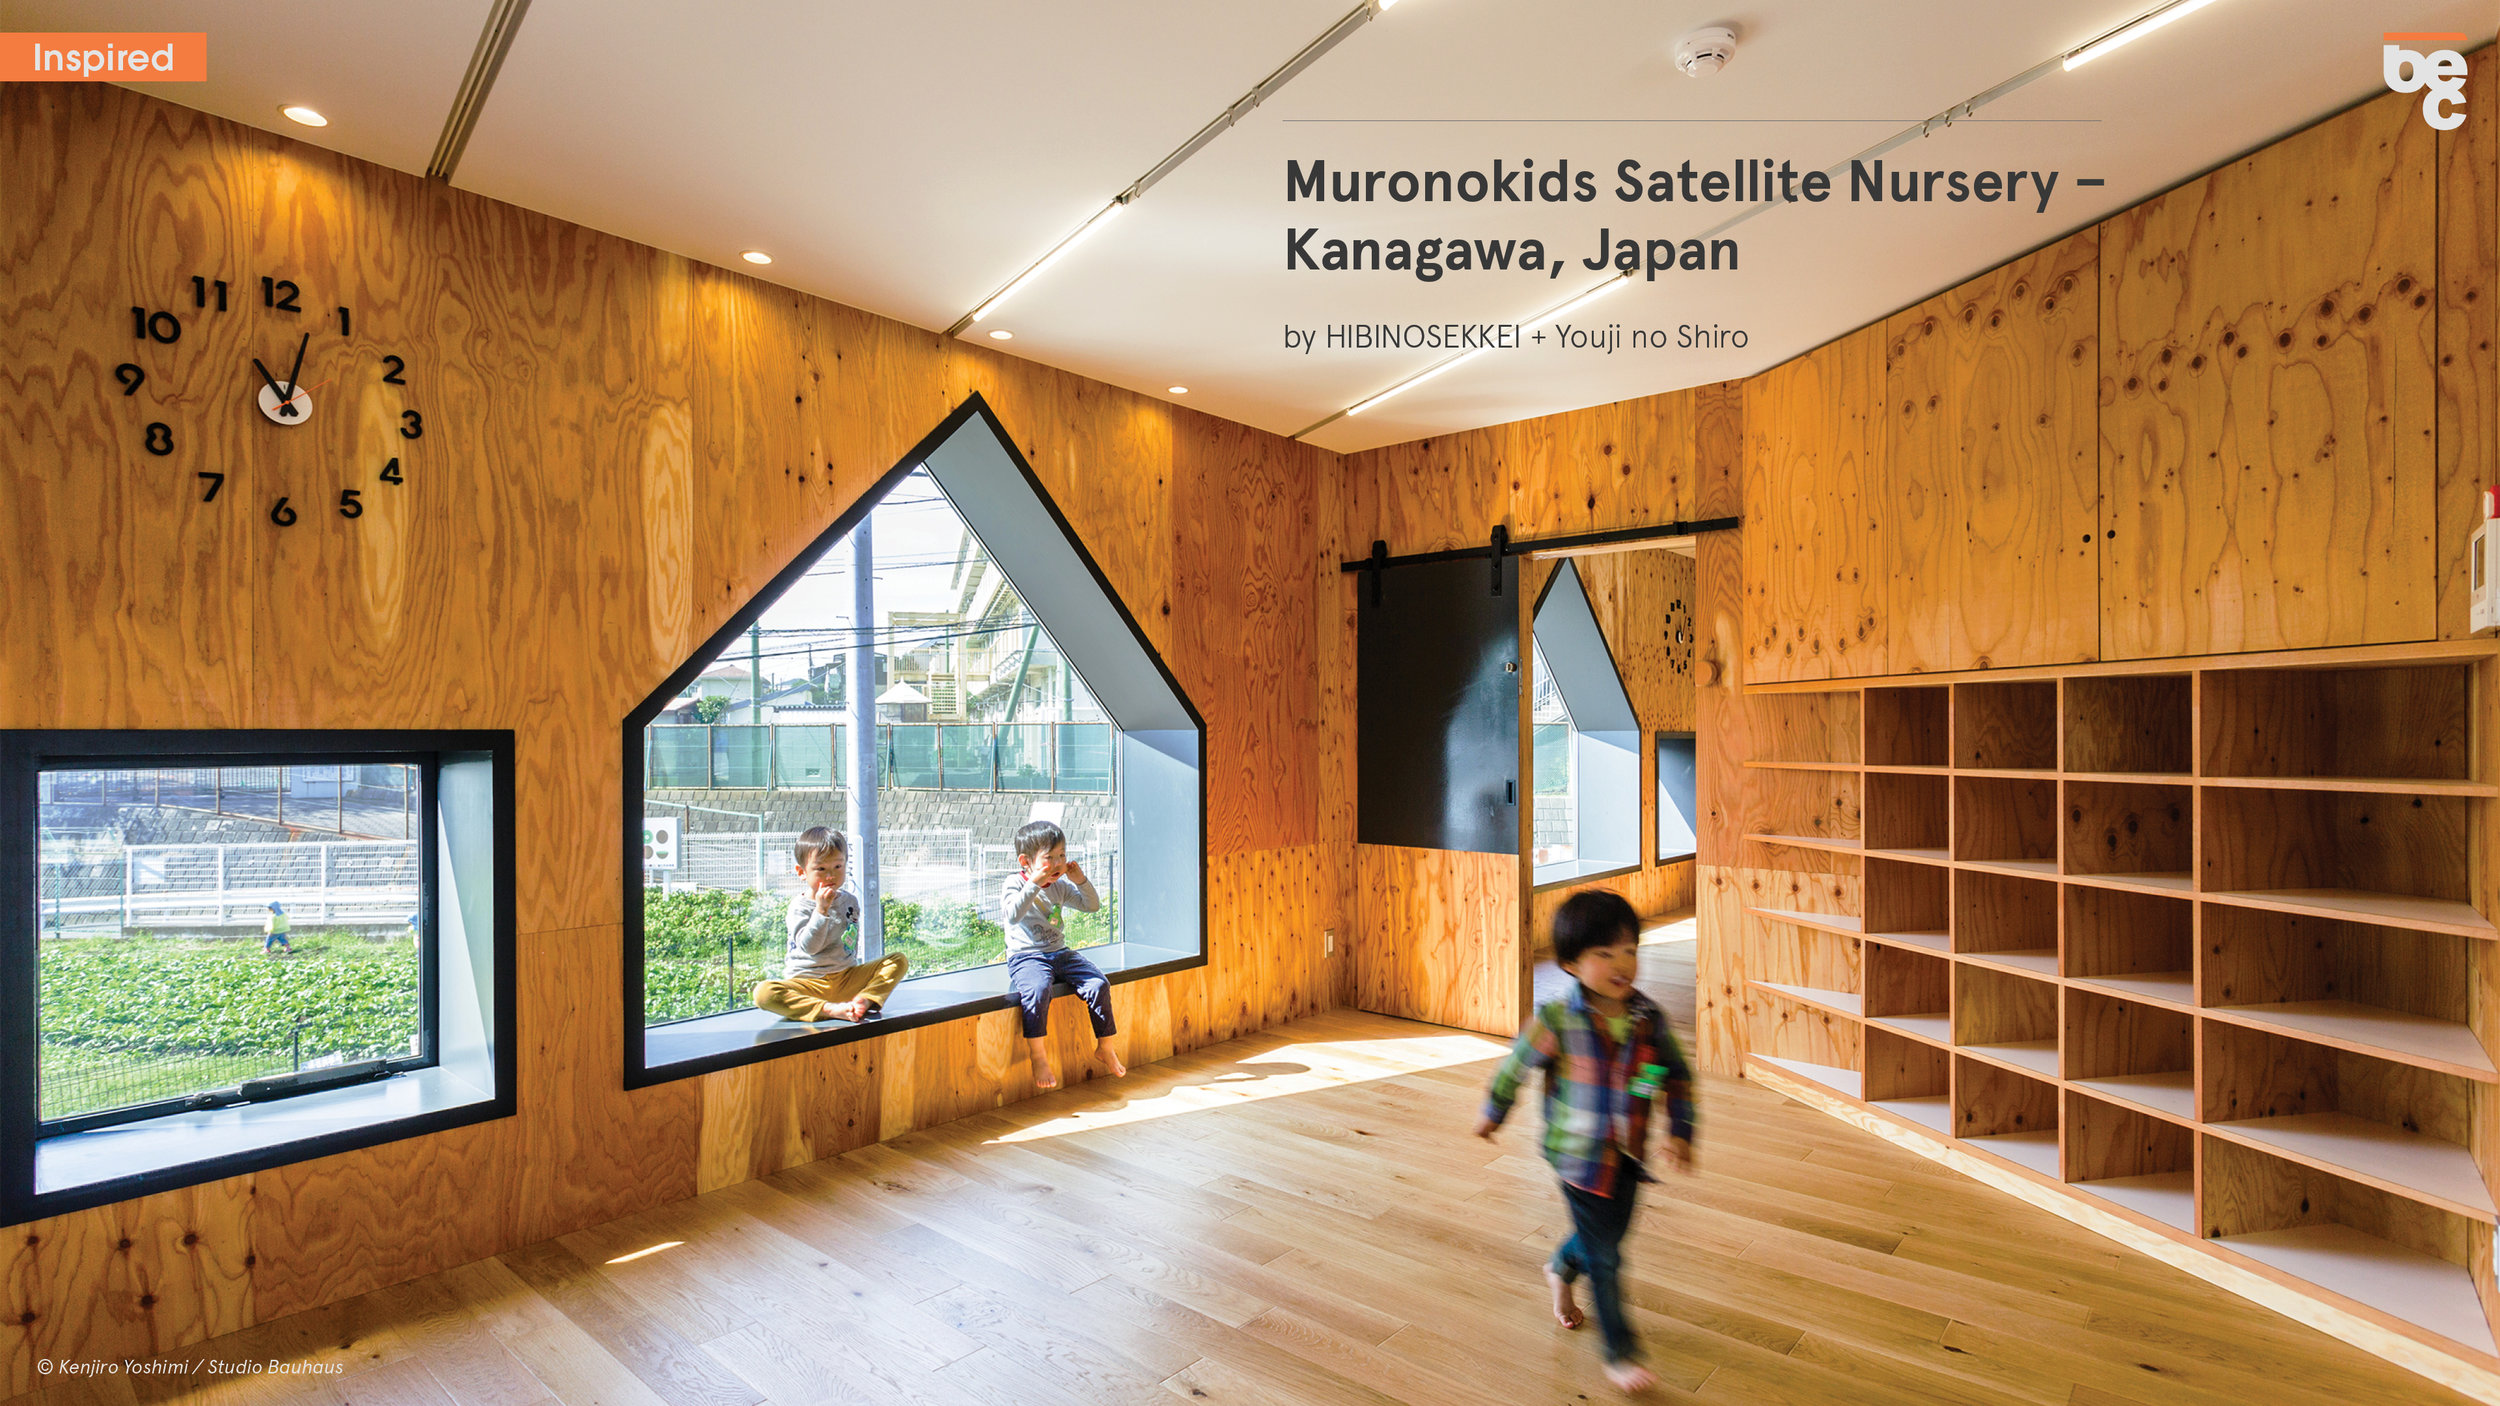 741_BEC-IN_muronokids-satellite-nursery.jpg